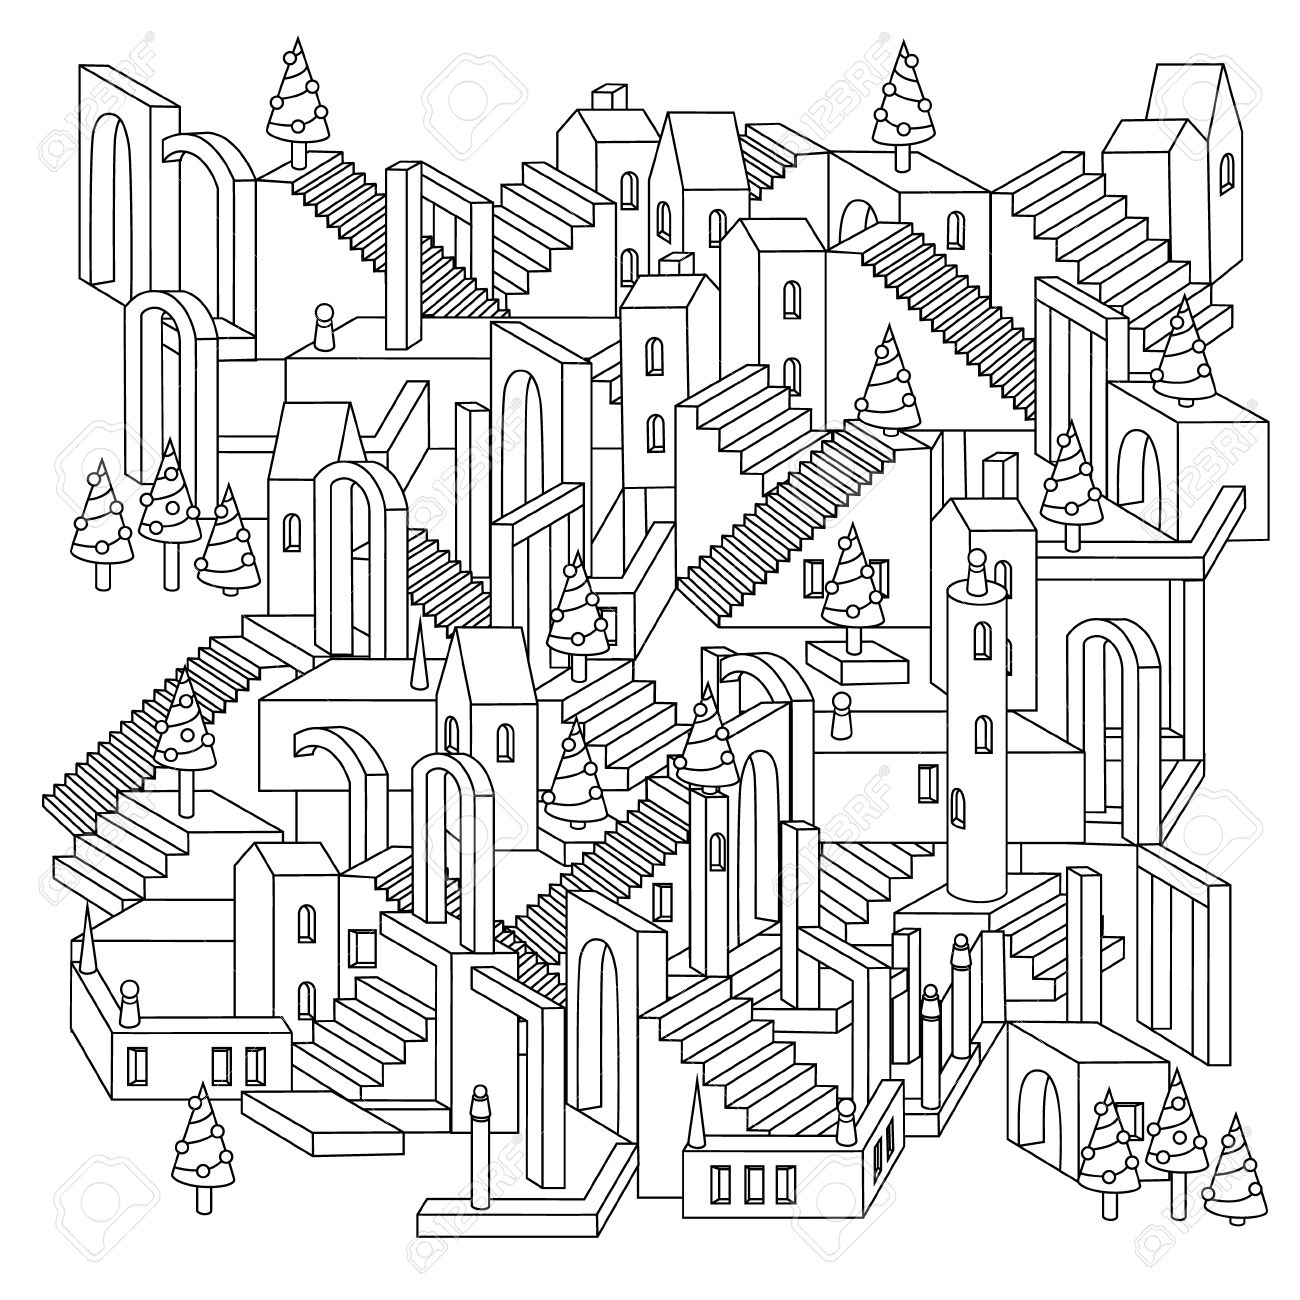 Puzzle Drawing at GetDrawings.com | Free for personal use Puzzle ...